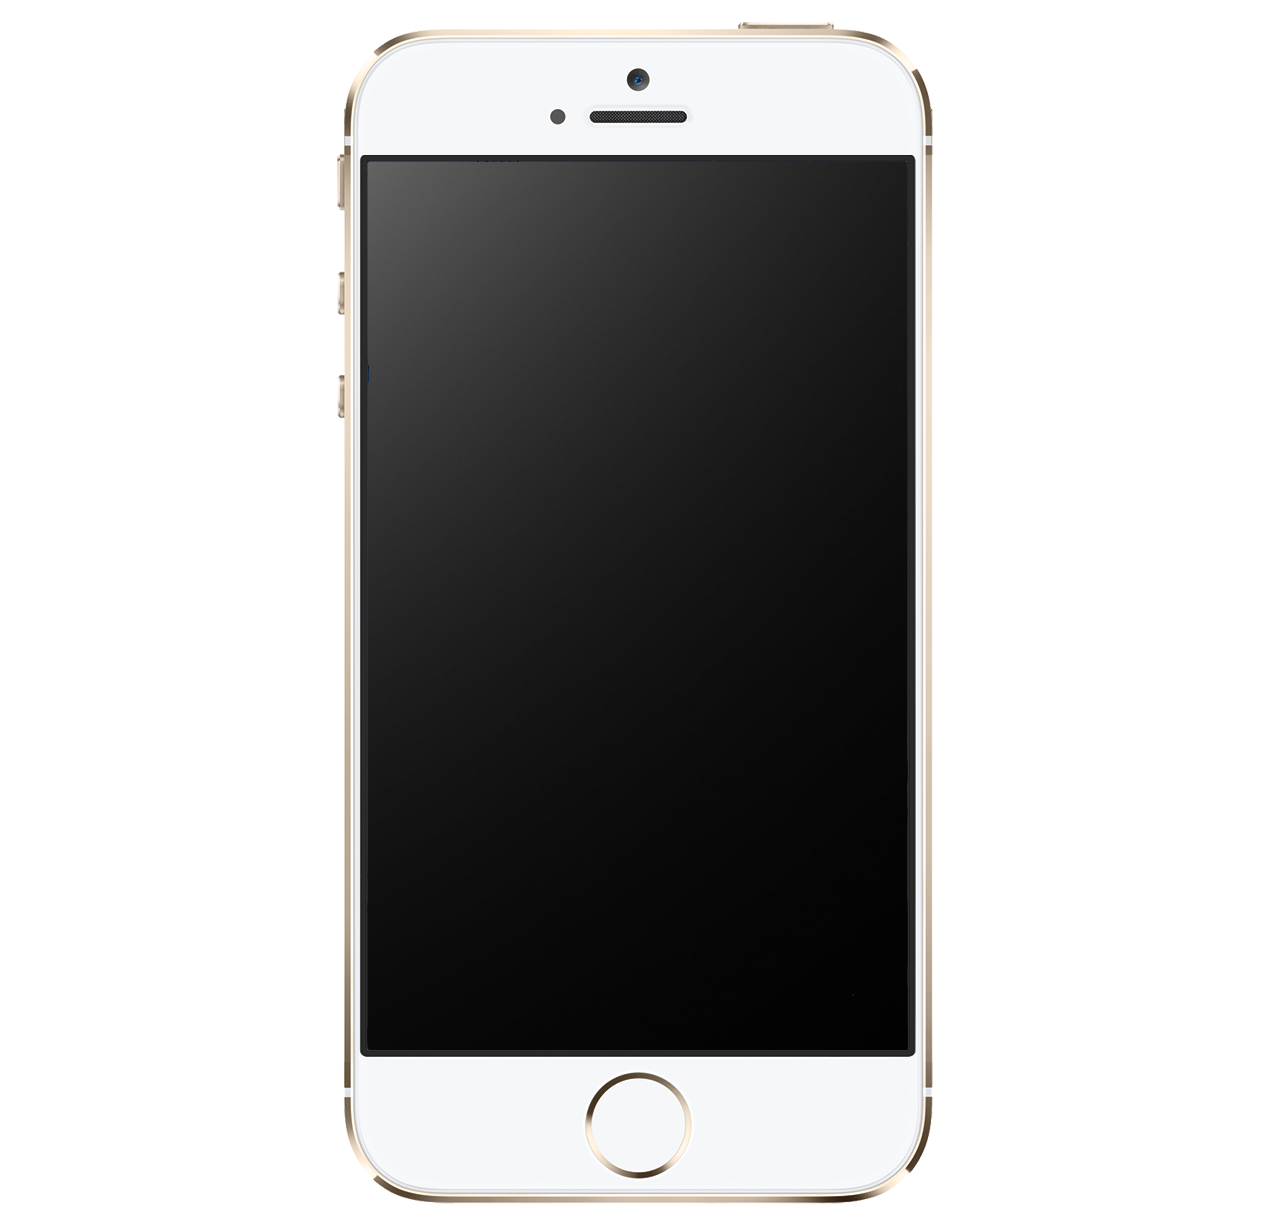 Iphone Apple - 1280x1230.png